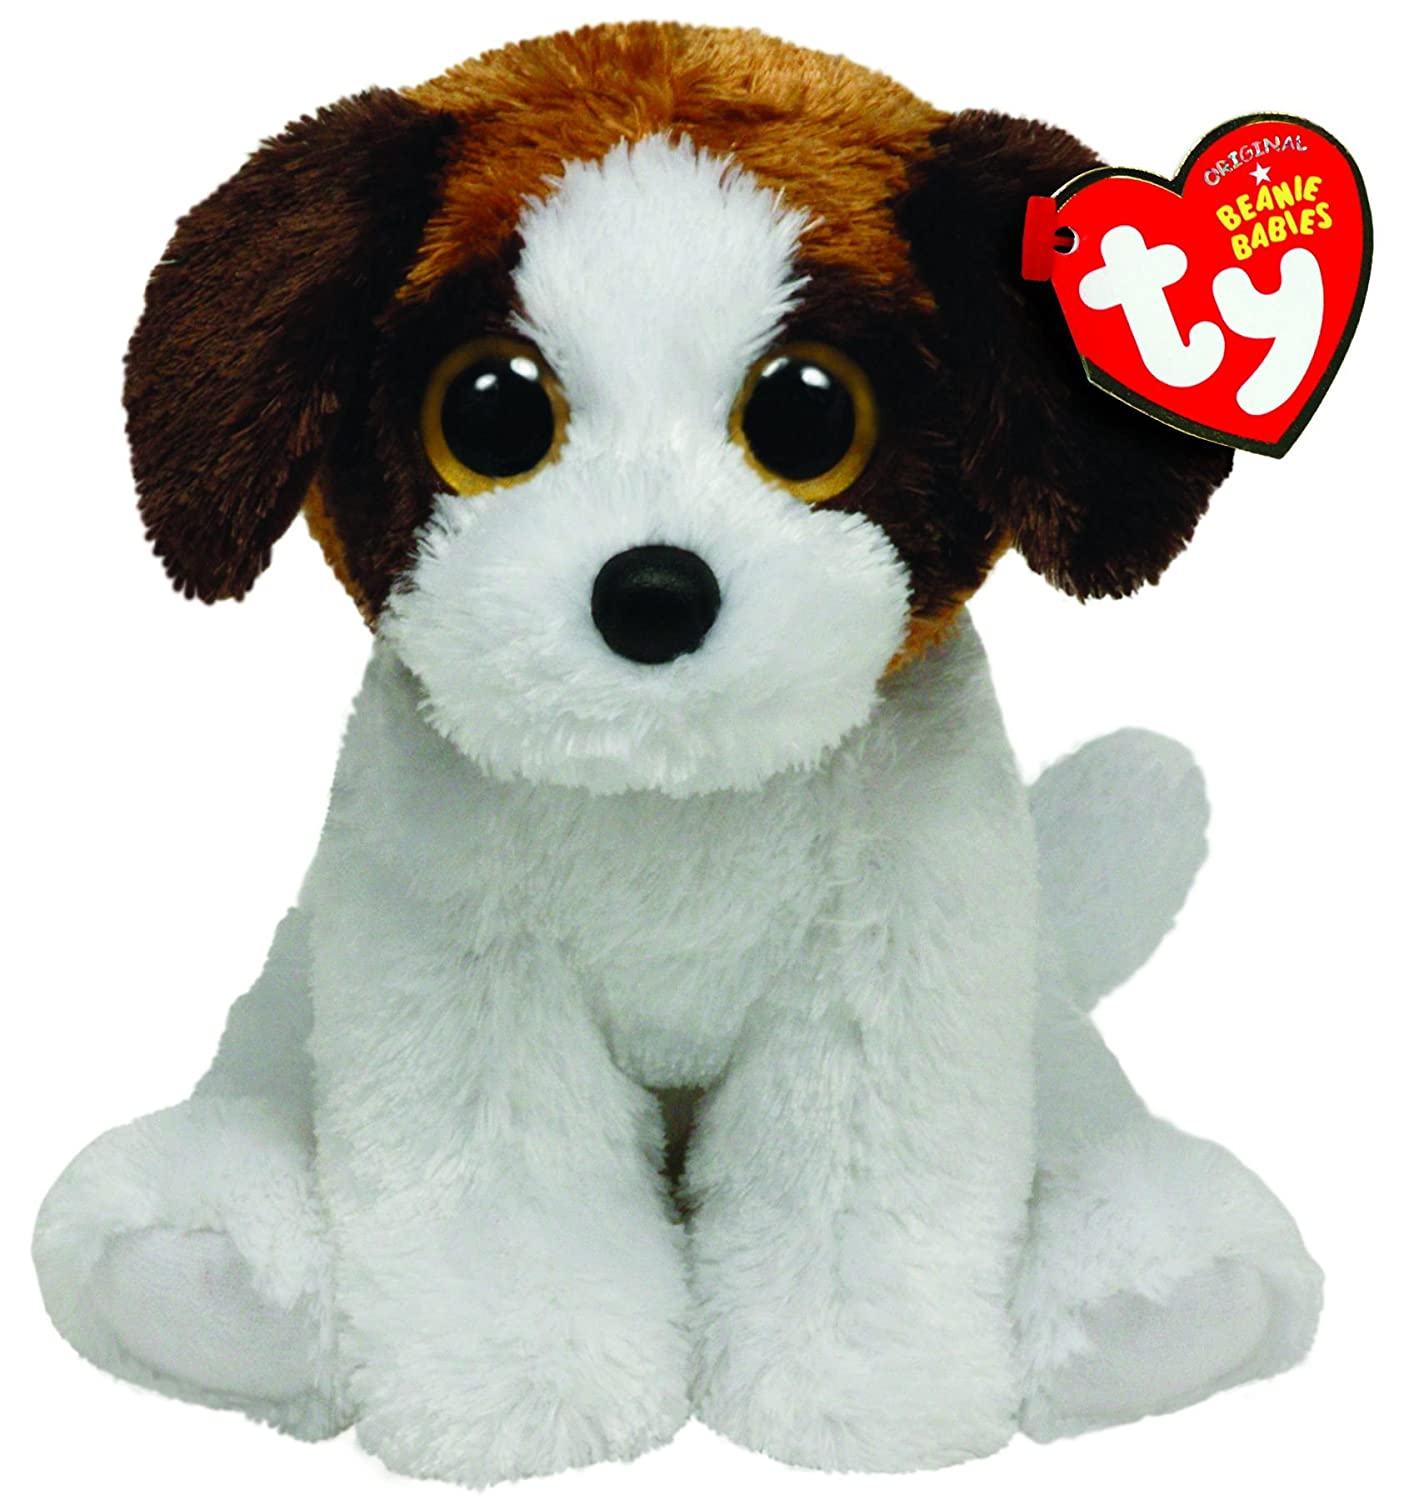 ty beanie baby toys   Target 695fa6d1290